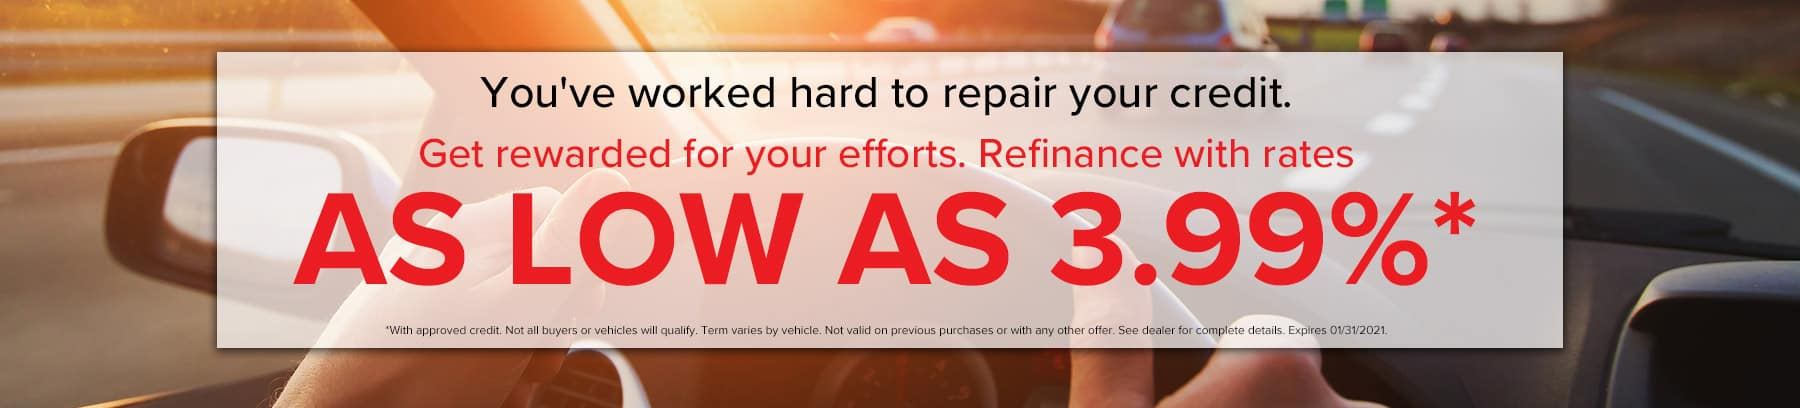 Refinance with rates as low as 3.99%